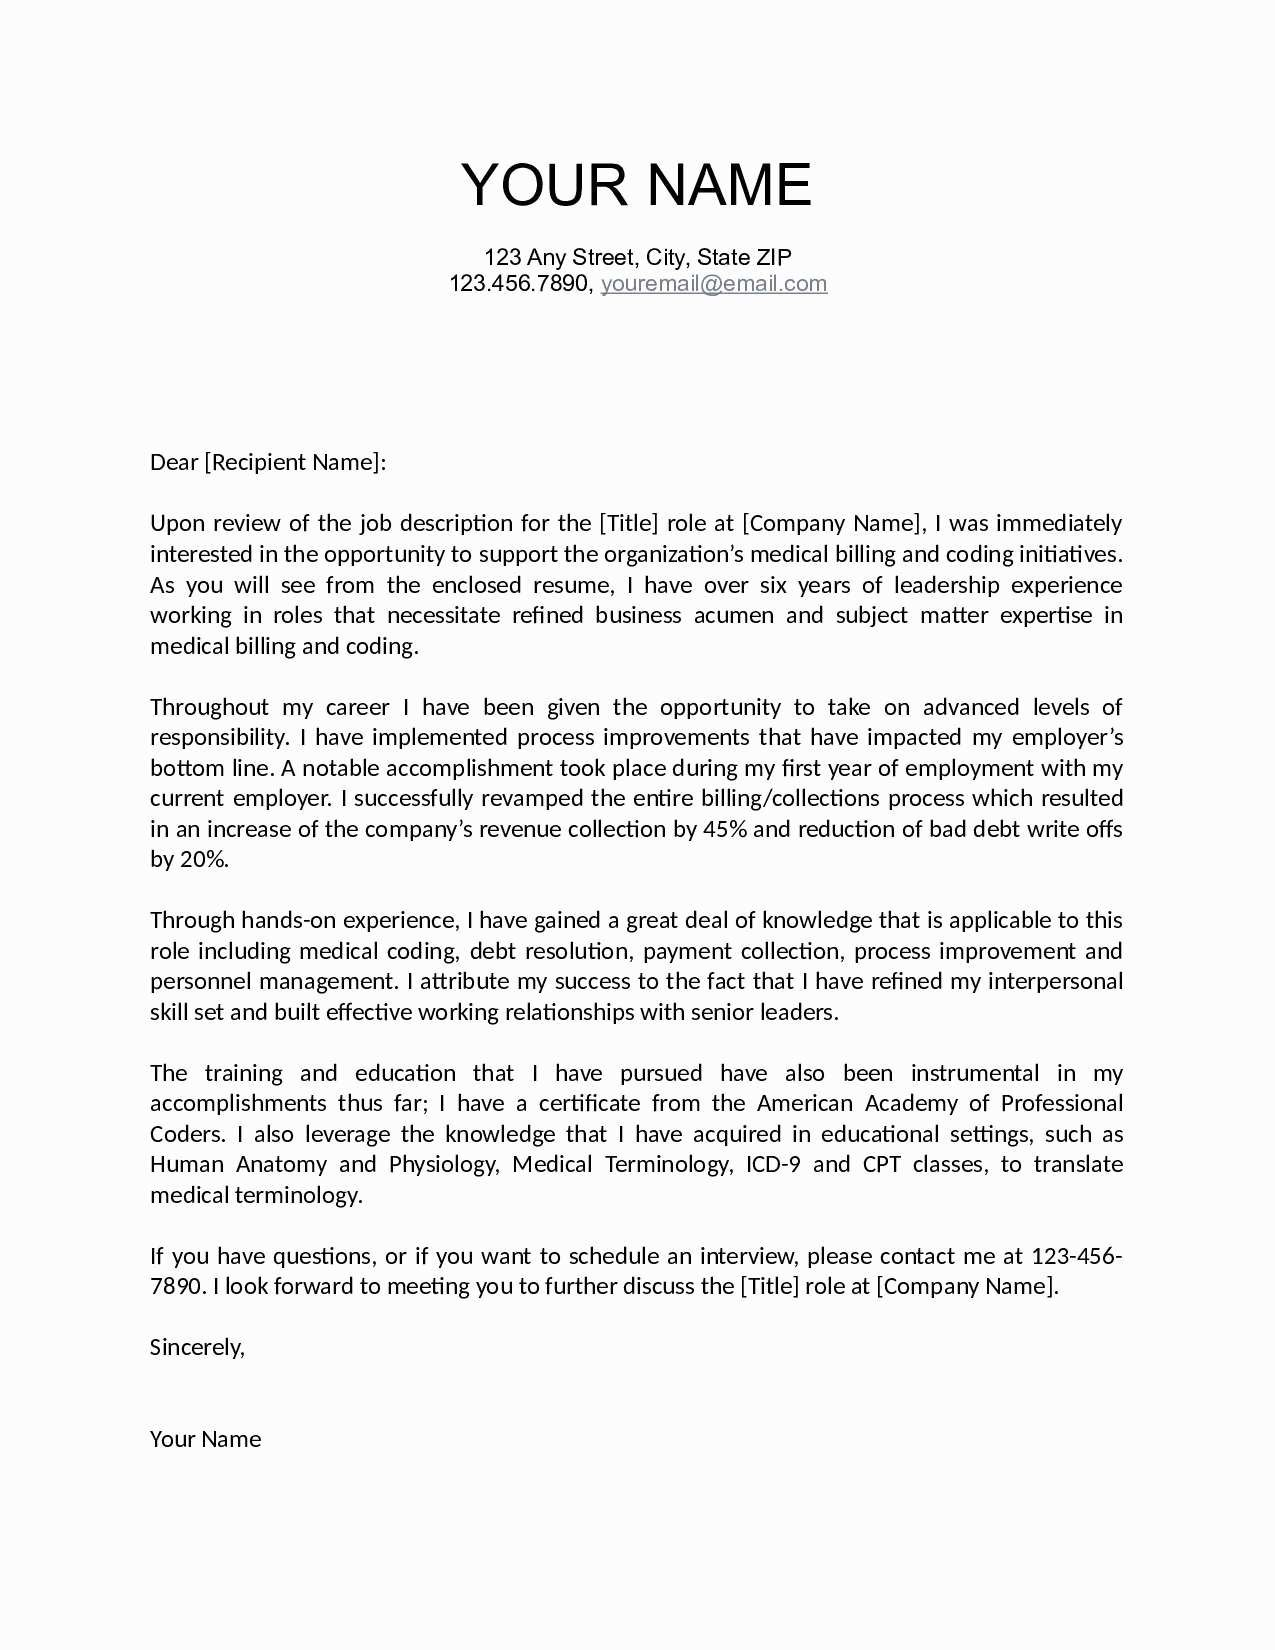 Job Offer Letter Template Word - Job Fer Letter Template Word Refrence Job Fer Letter Template Us